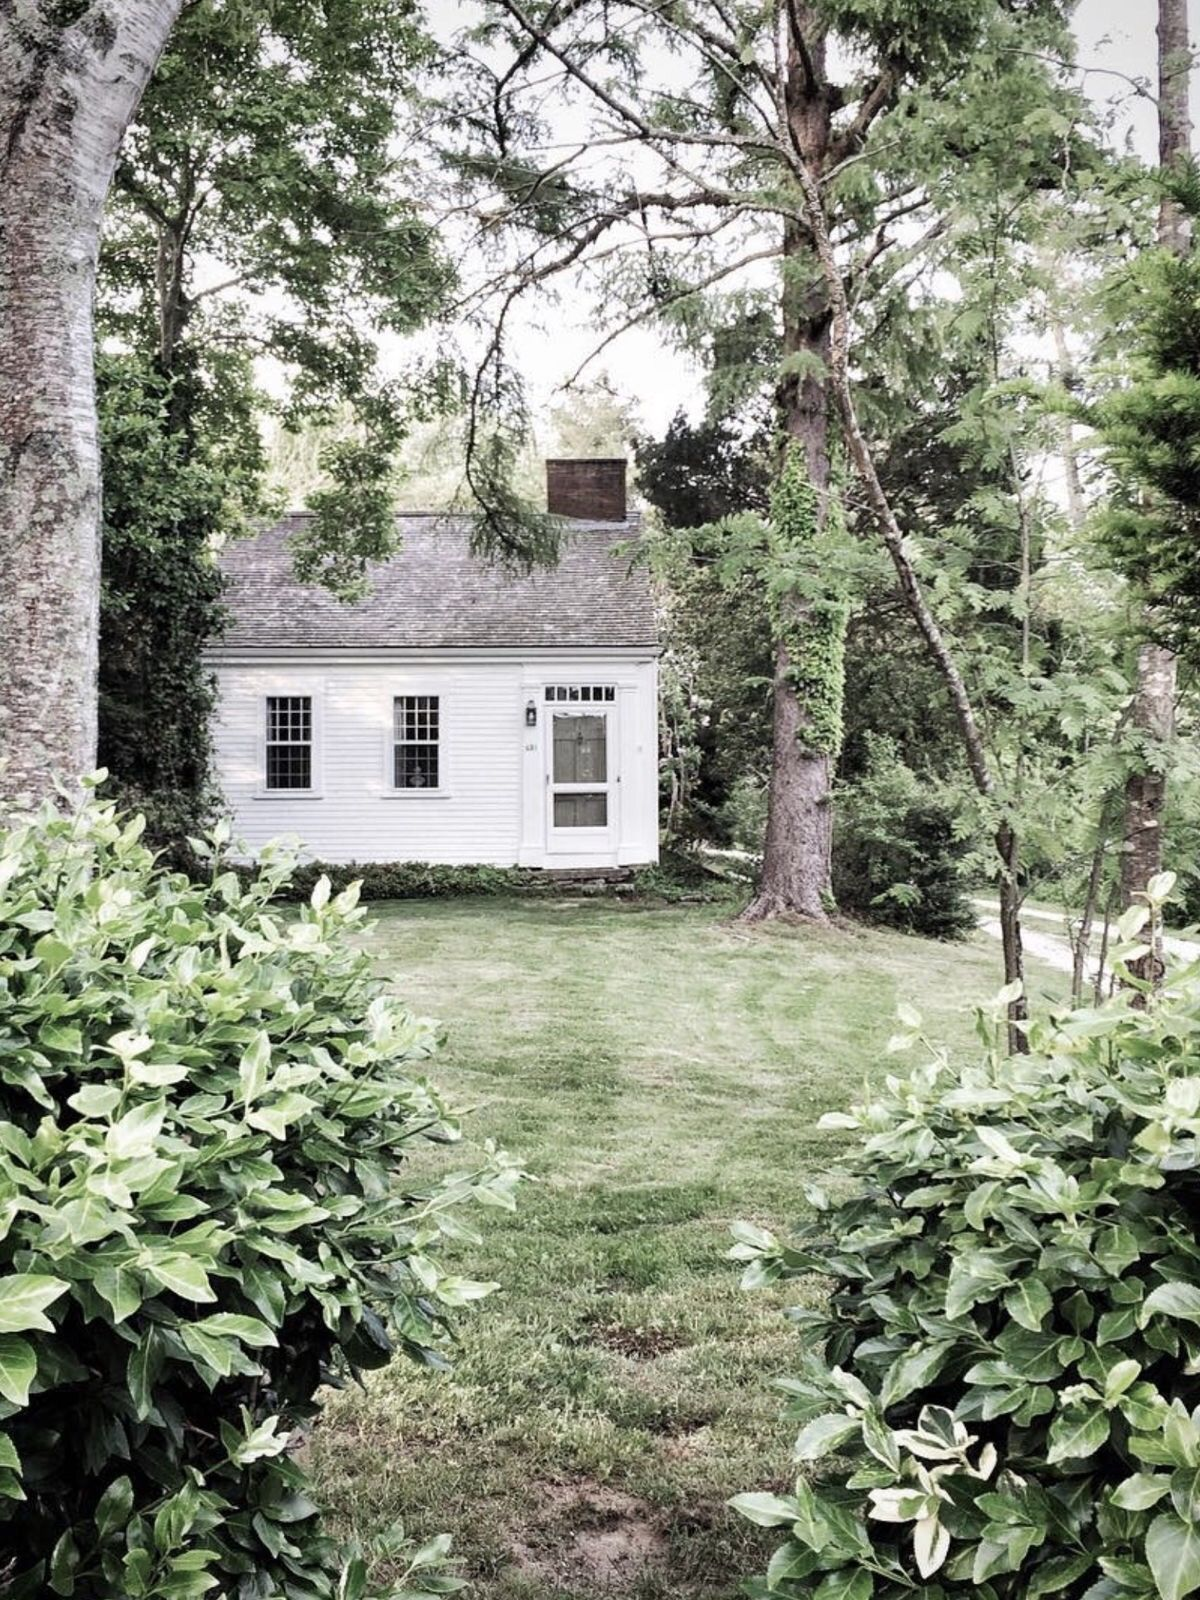 Tiny homes cottage country - White Cottage Country Cottages Mobile Home Wildflowers Country Life Outdoor Ideas Solitude Tiny Homes Fields